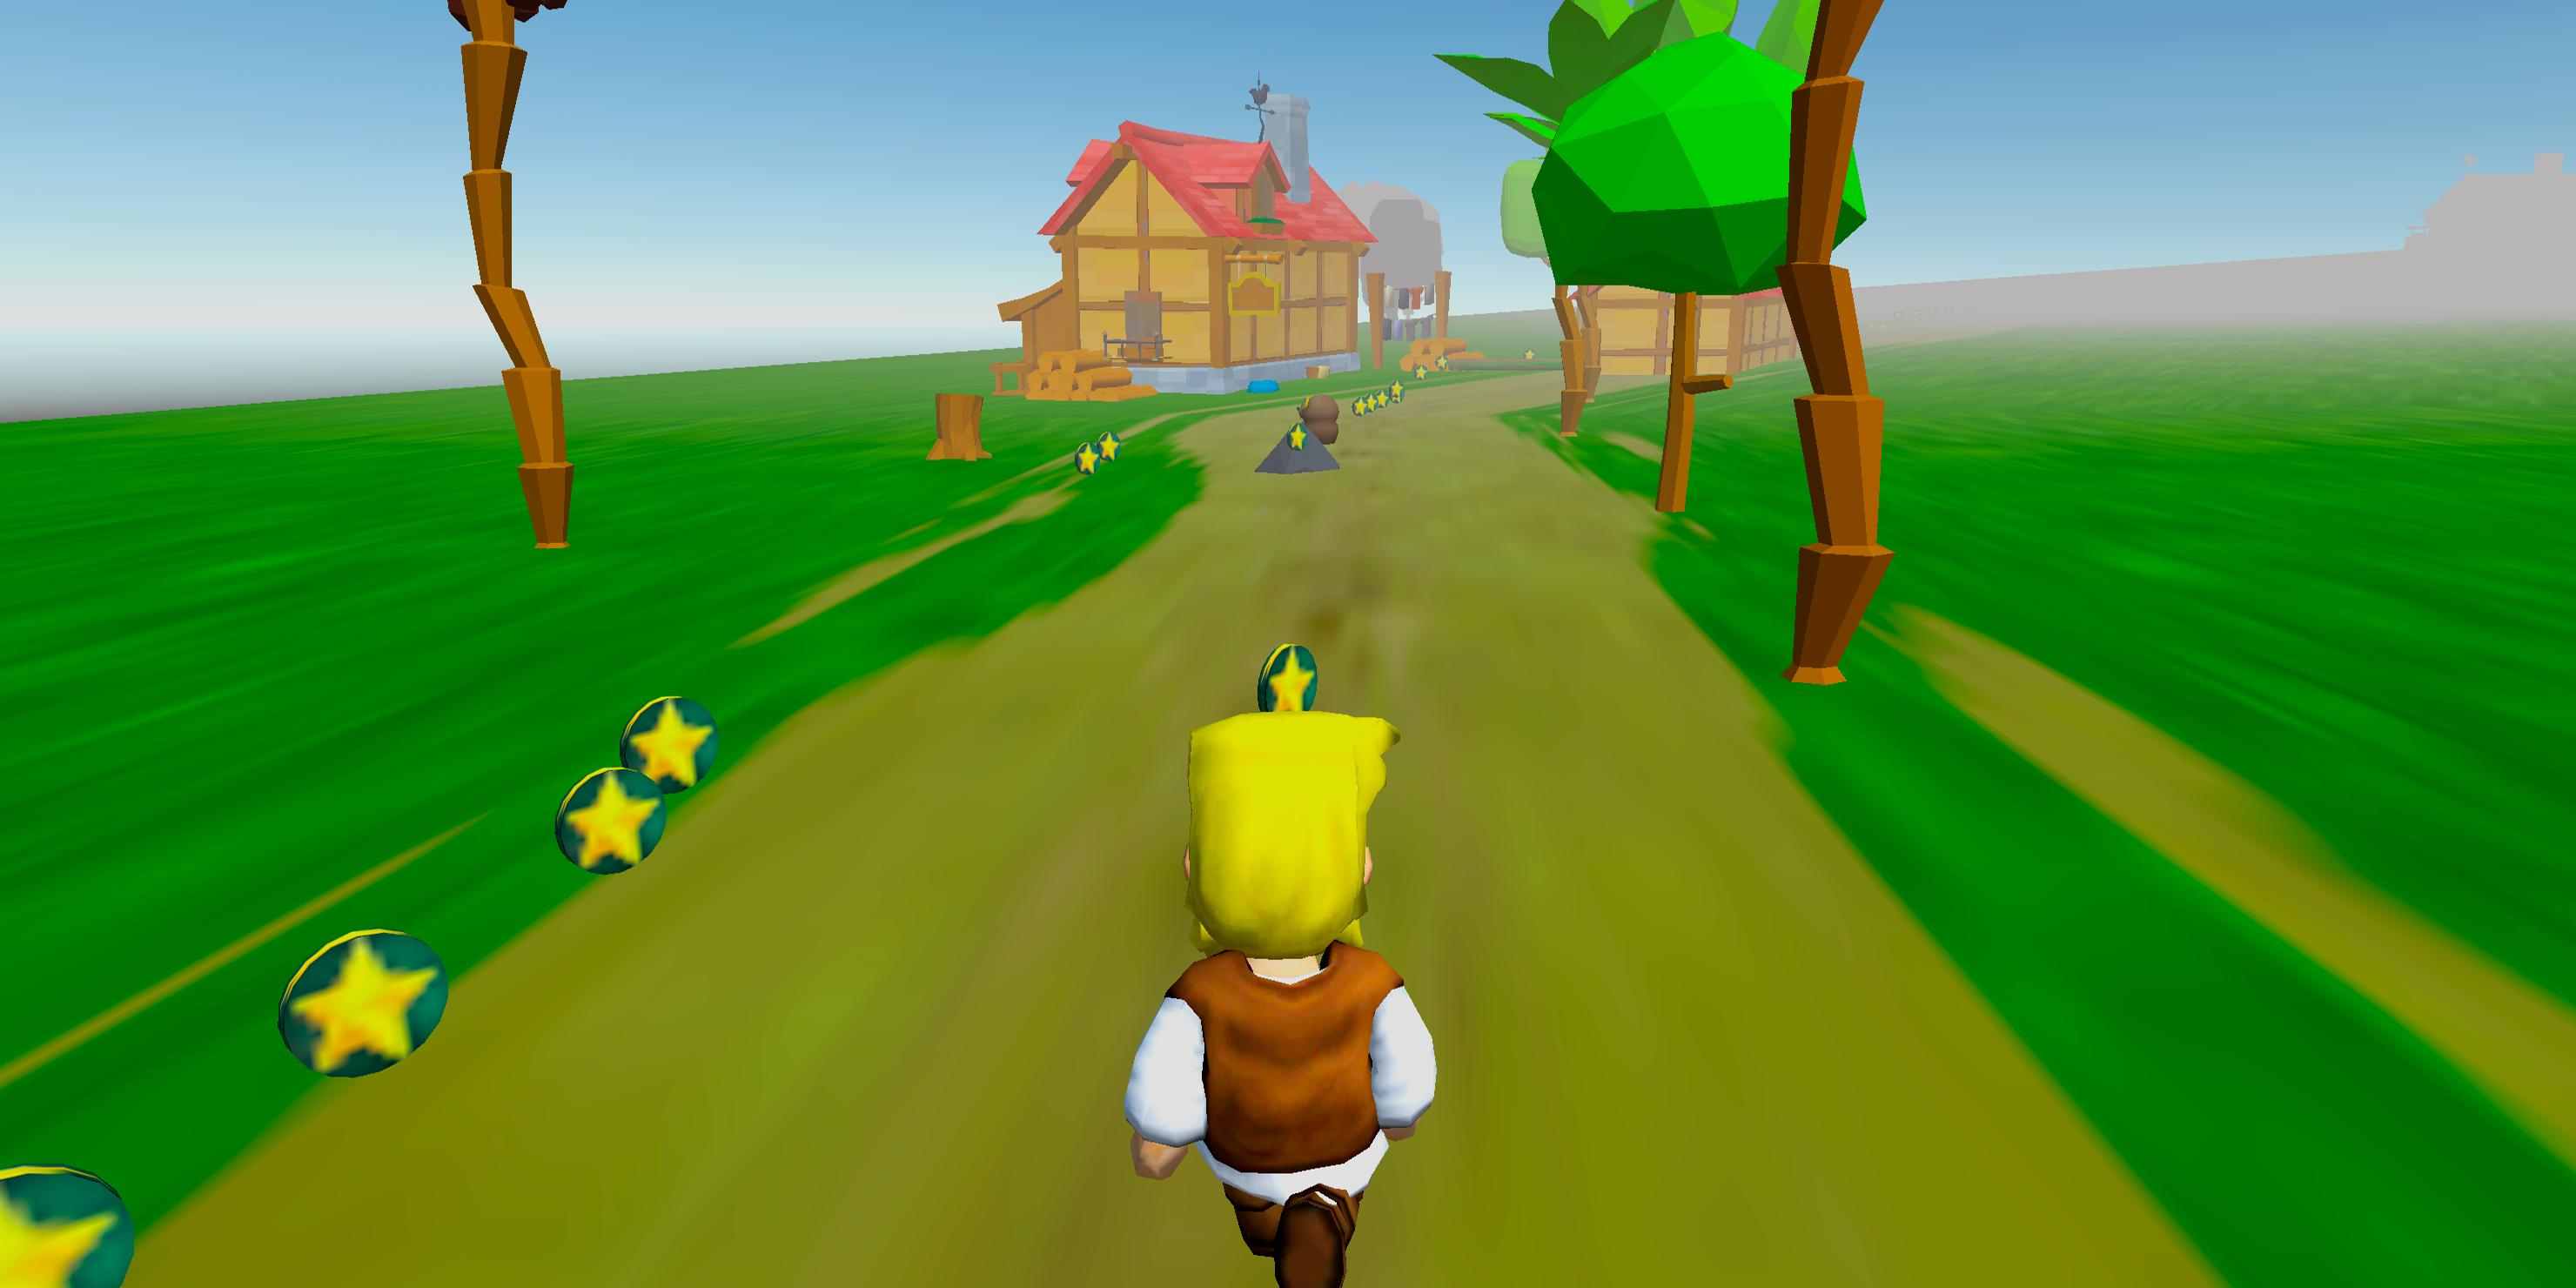 Running Crazy Farm 0.4 Screenshot 4